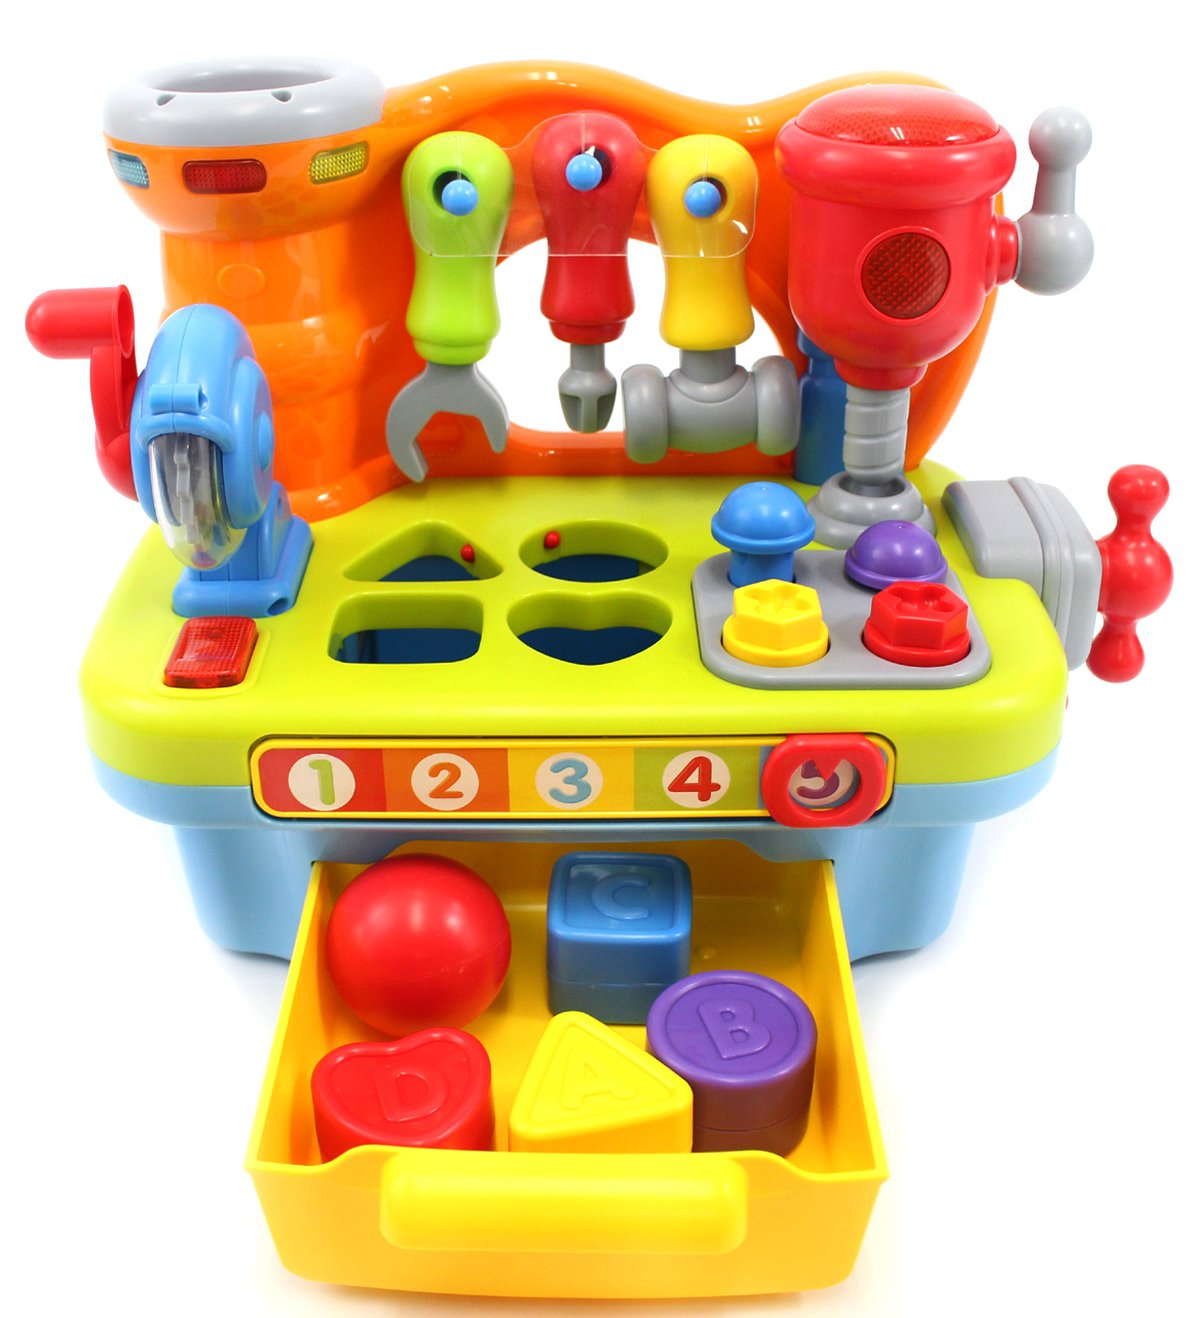 PowerTRC Little Engineer Multifunctional Musical Learning Tool Workbench for Kids by PowerTRC (Image #1)